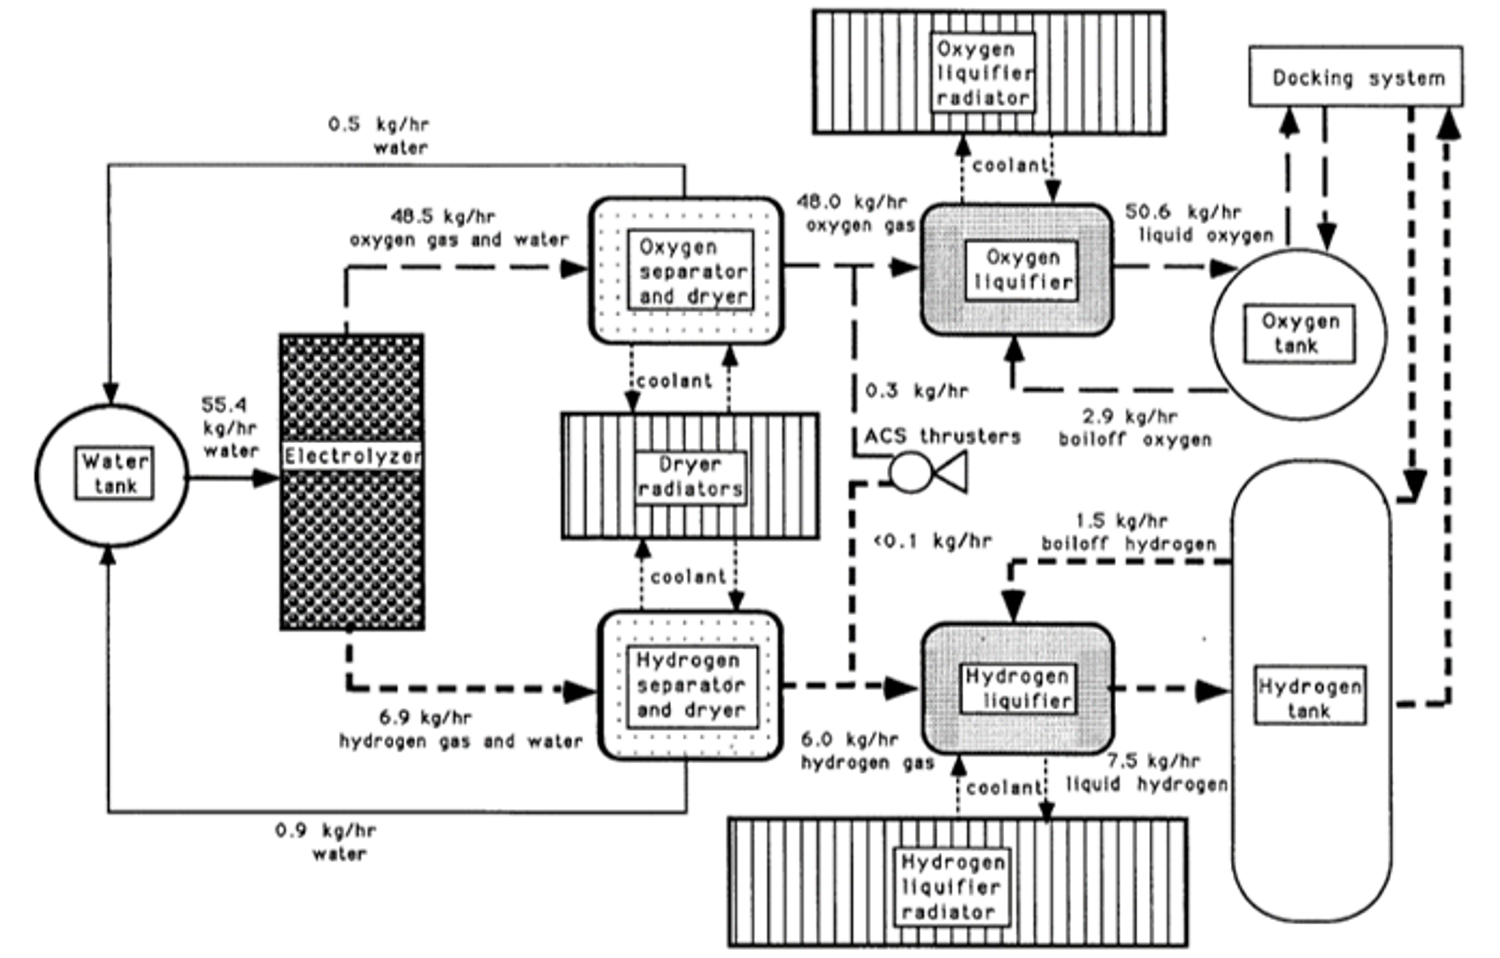 Propellant processor primary flow block diagram (baseline lunar scenario) [Moran]